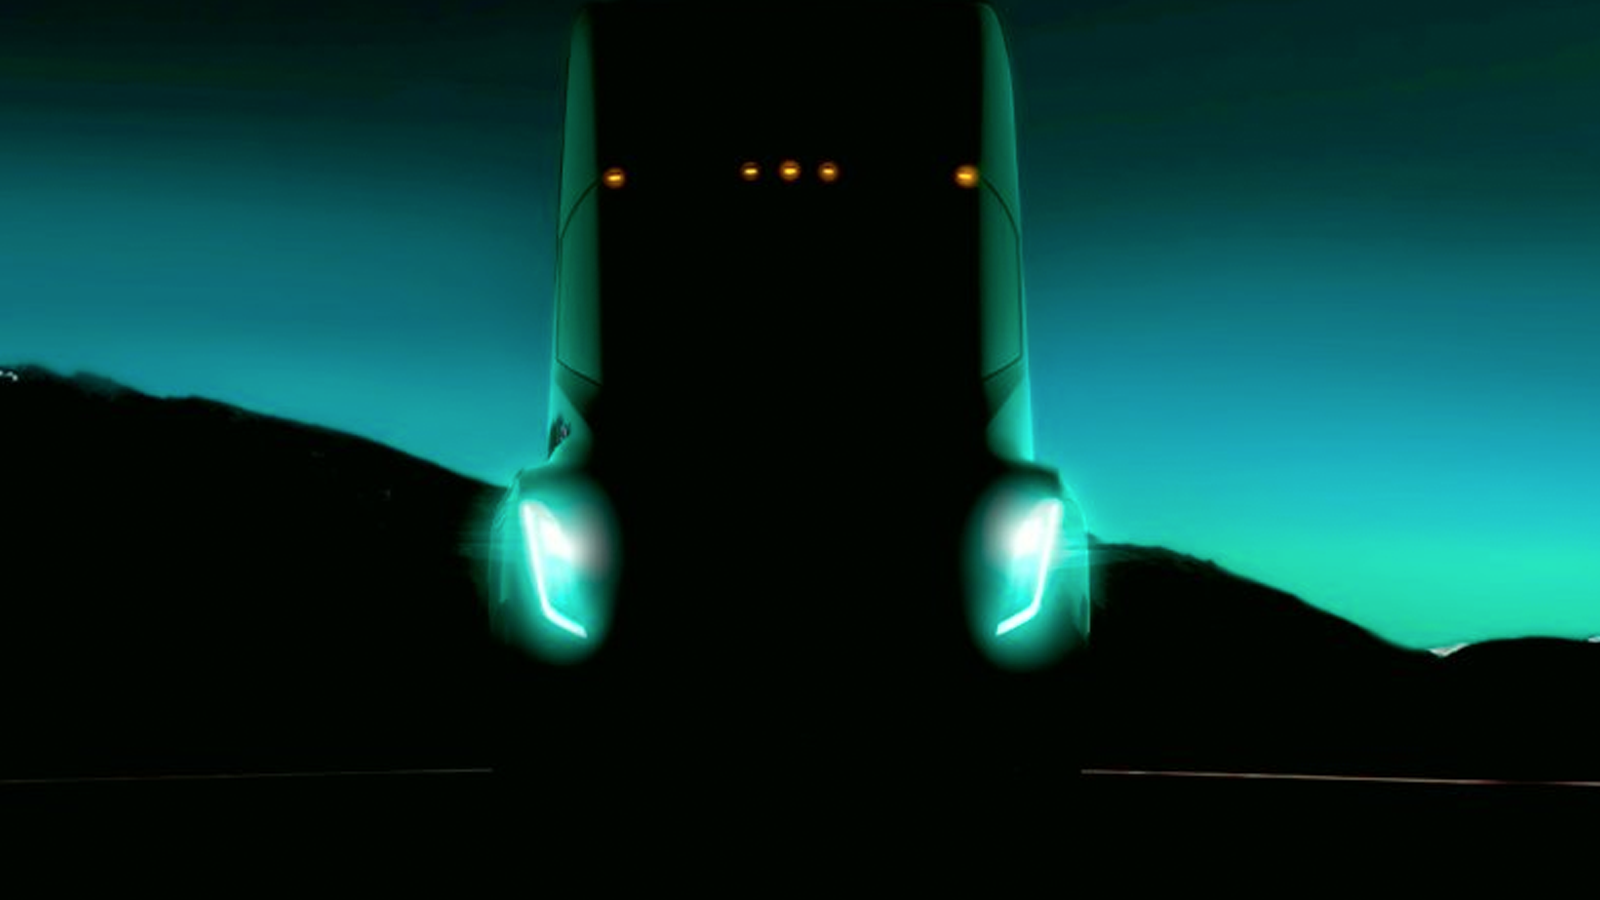 Tesla eyes autonomous big rig testing in Nevada